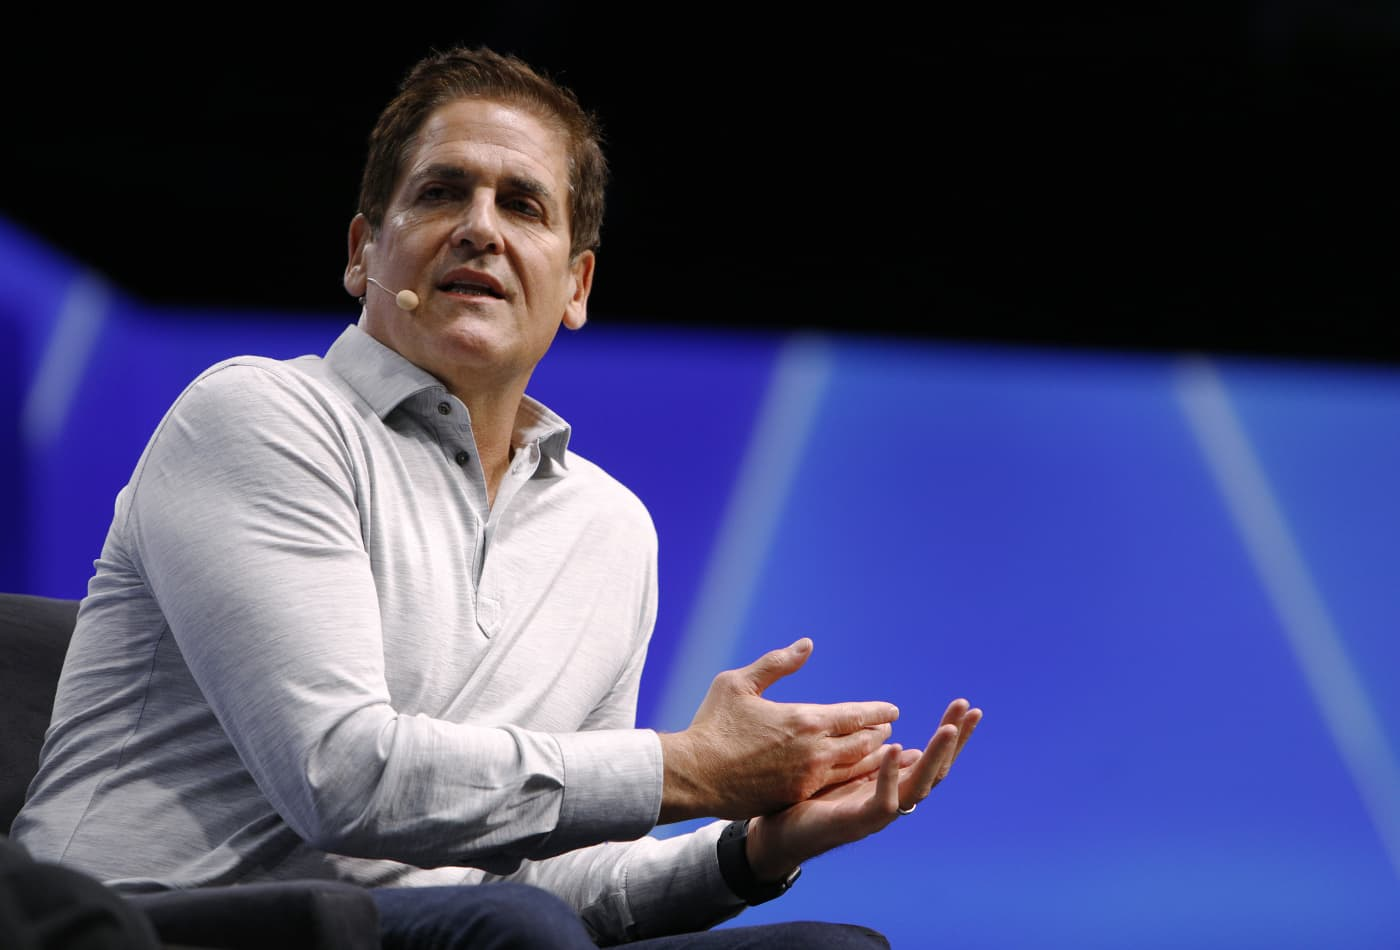 Mark Cuban: Every household in America should receive a $1,000 stimulus check every 2 weeks for the next 2 months